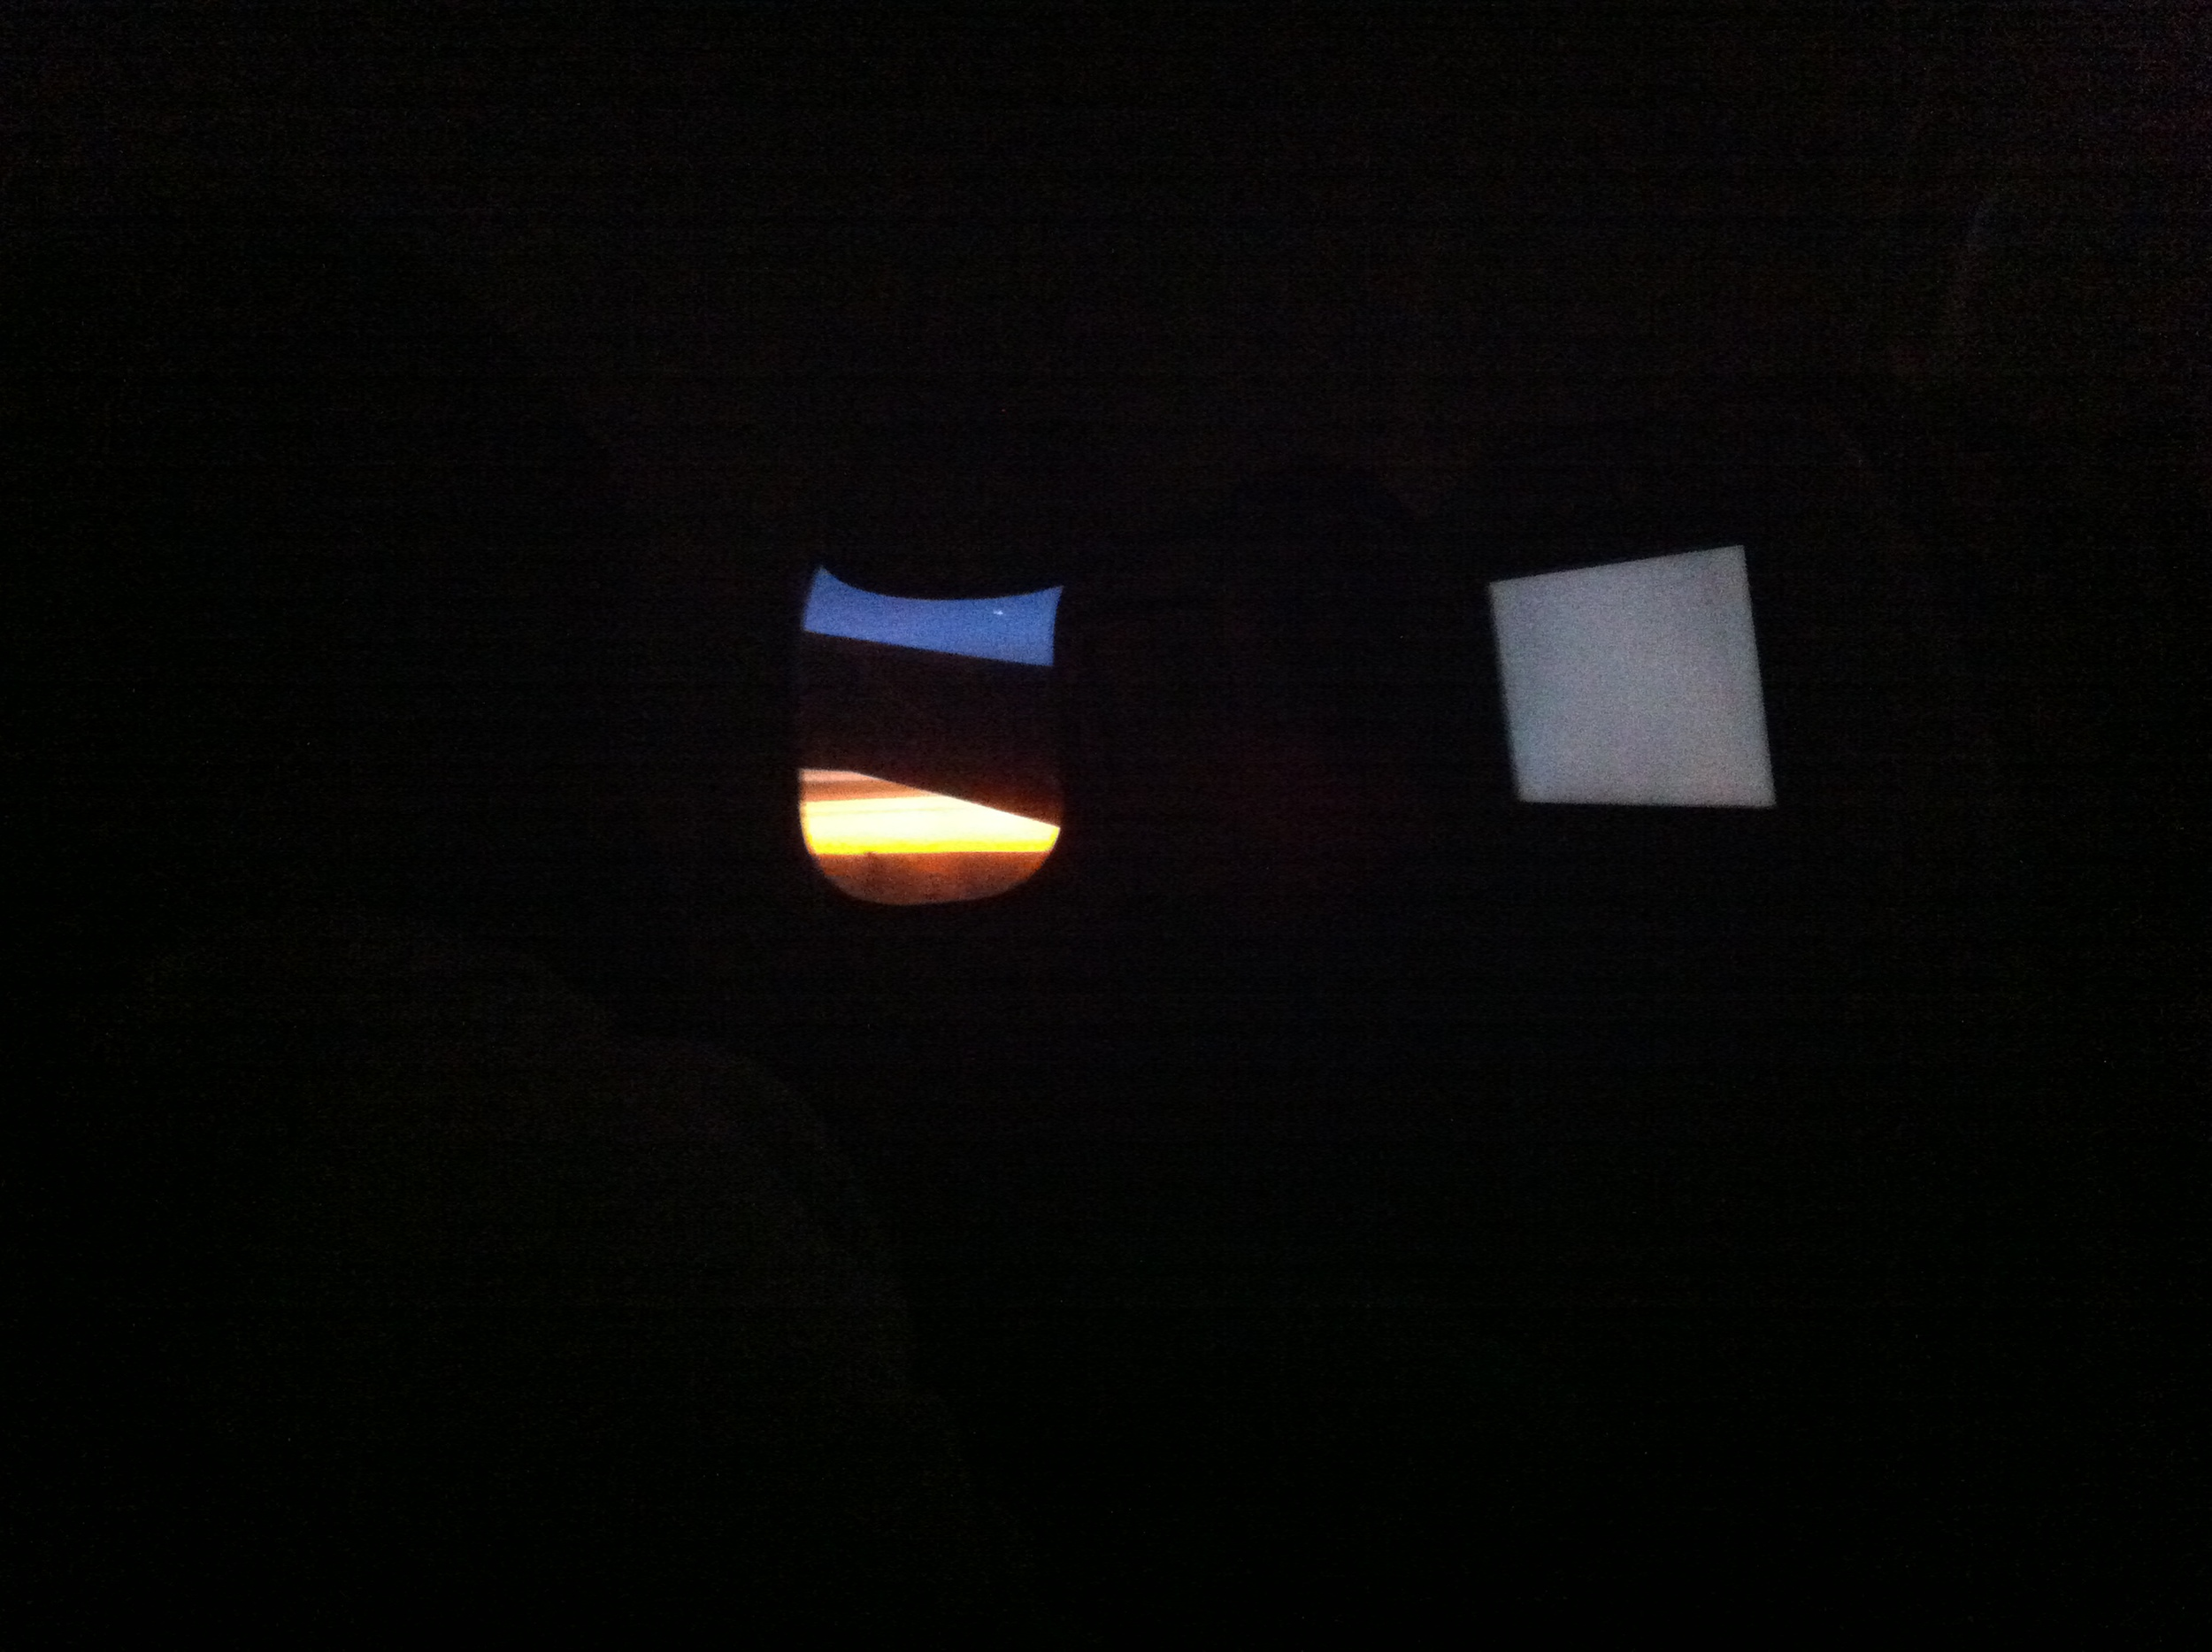 The view of the sunrise from my airline seat.